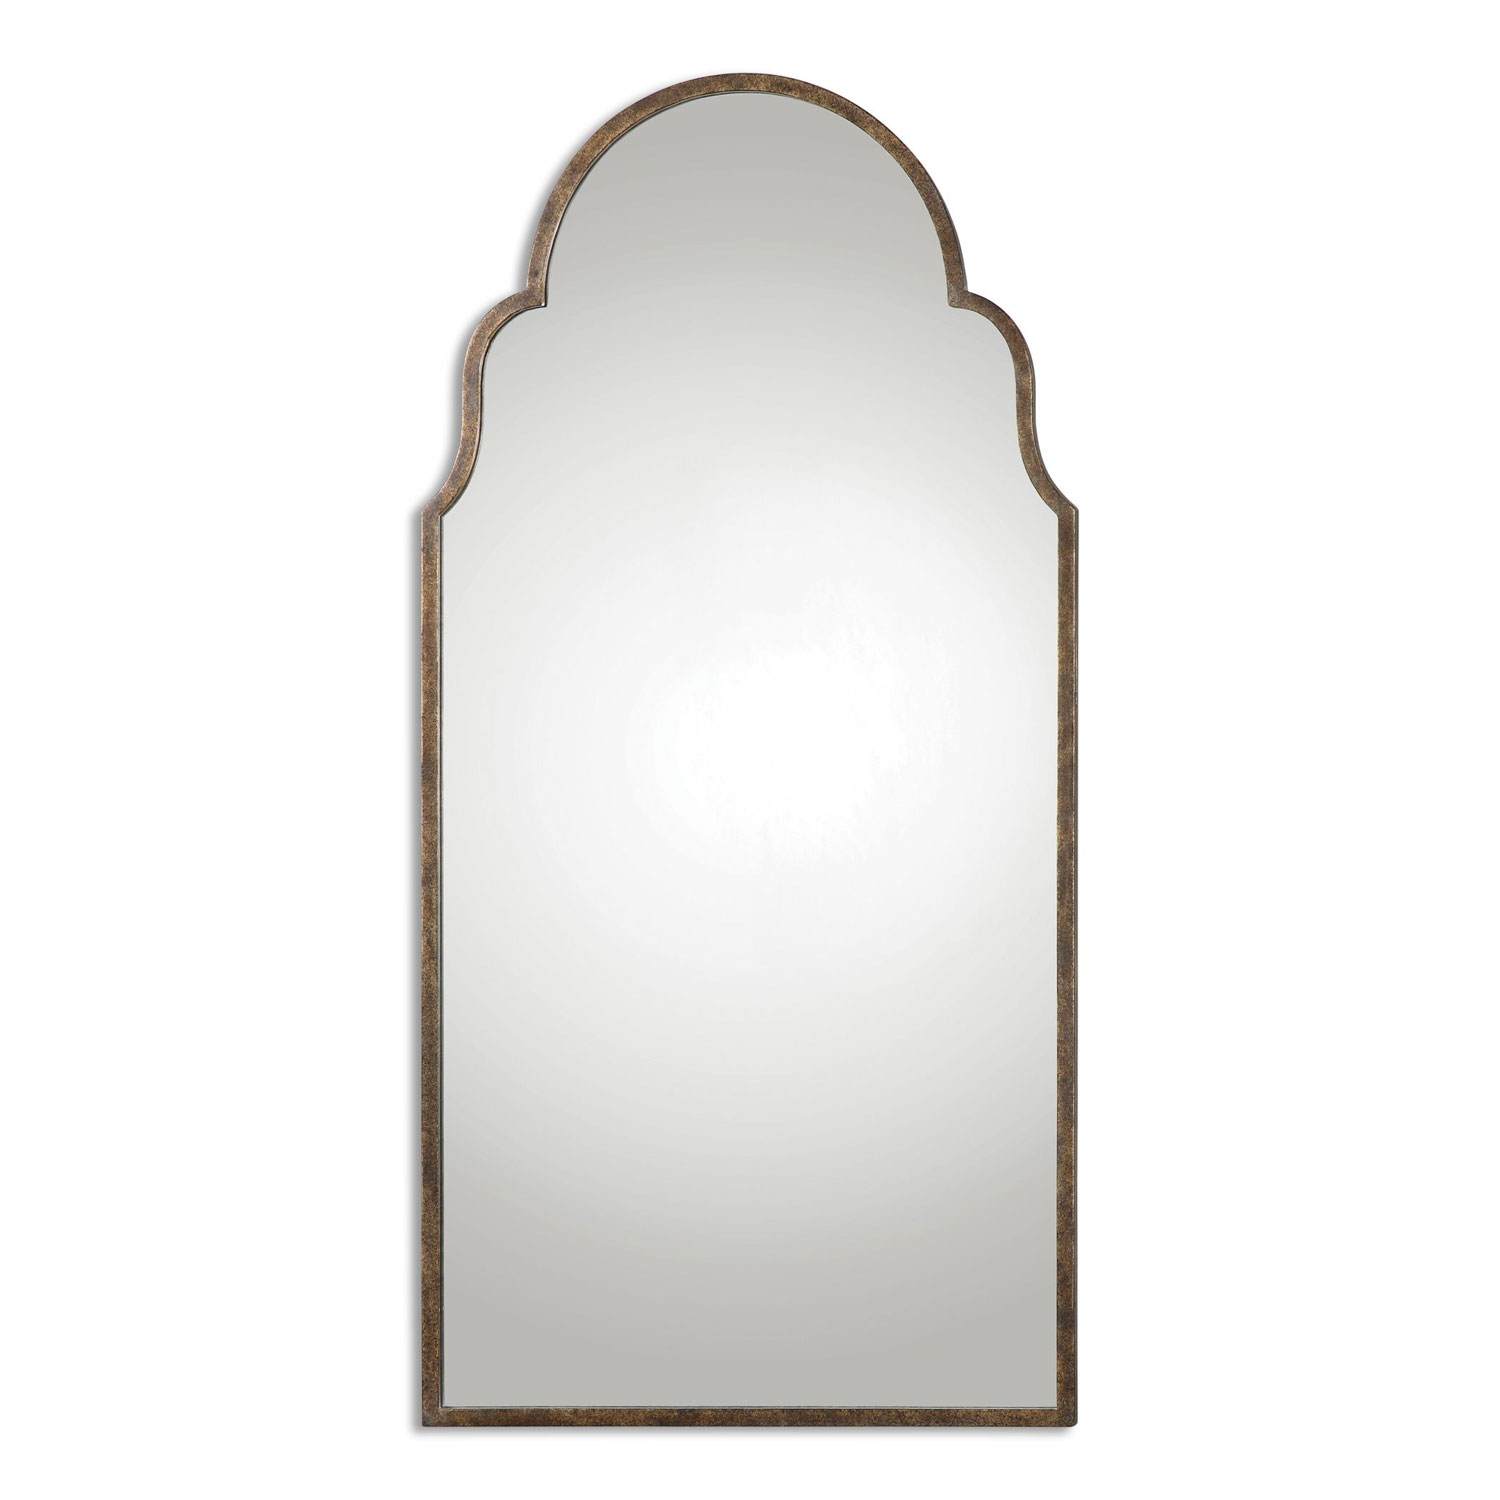 Arch Top Wall Mirror Arch Top Wall Mirror arched crowned mirrors bellacor 1500 X 1500